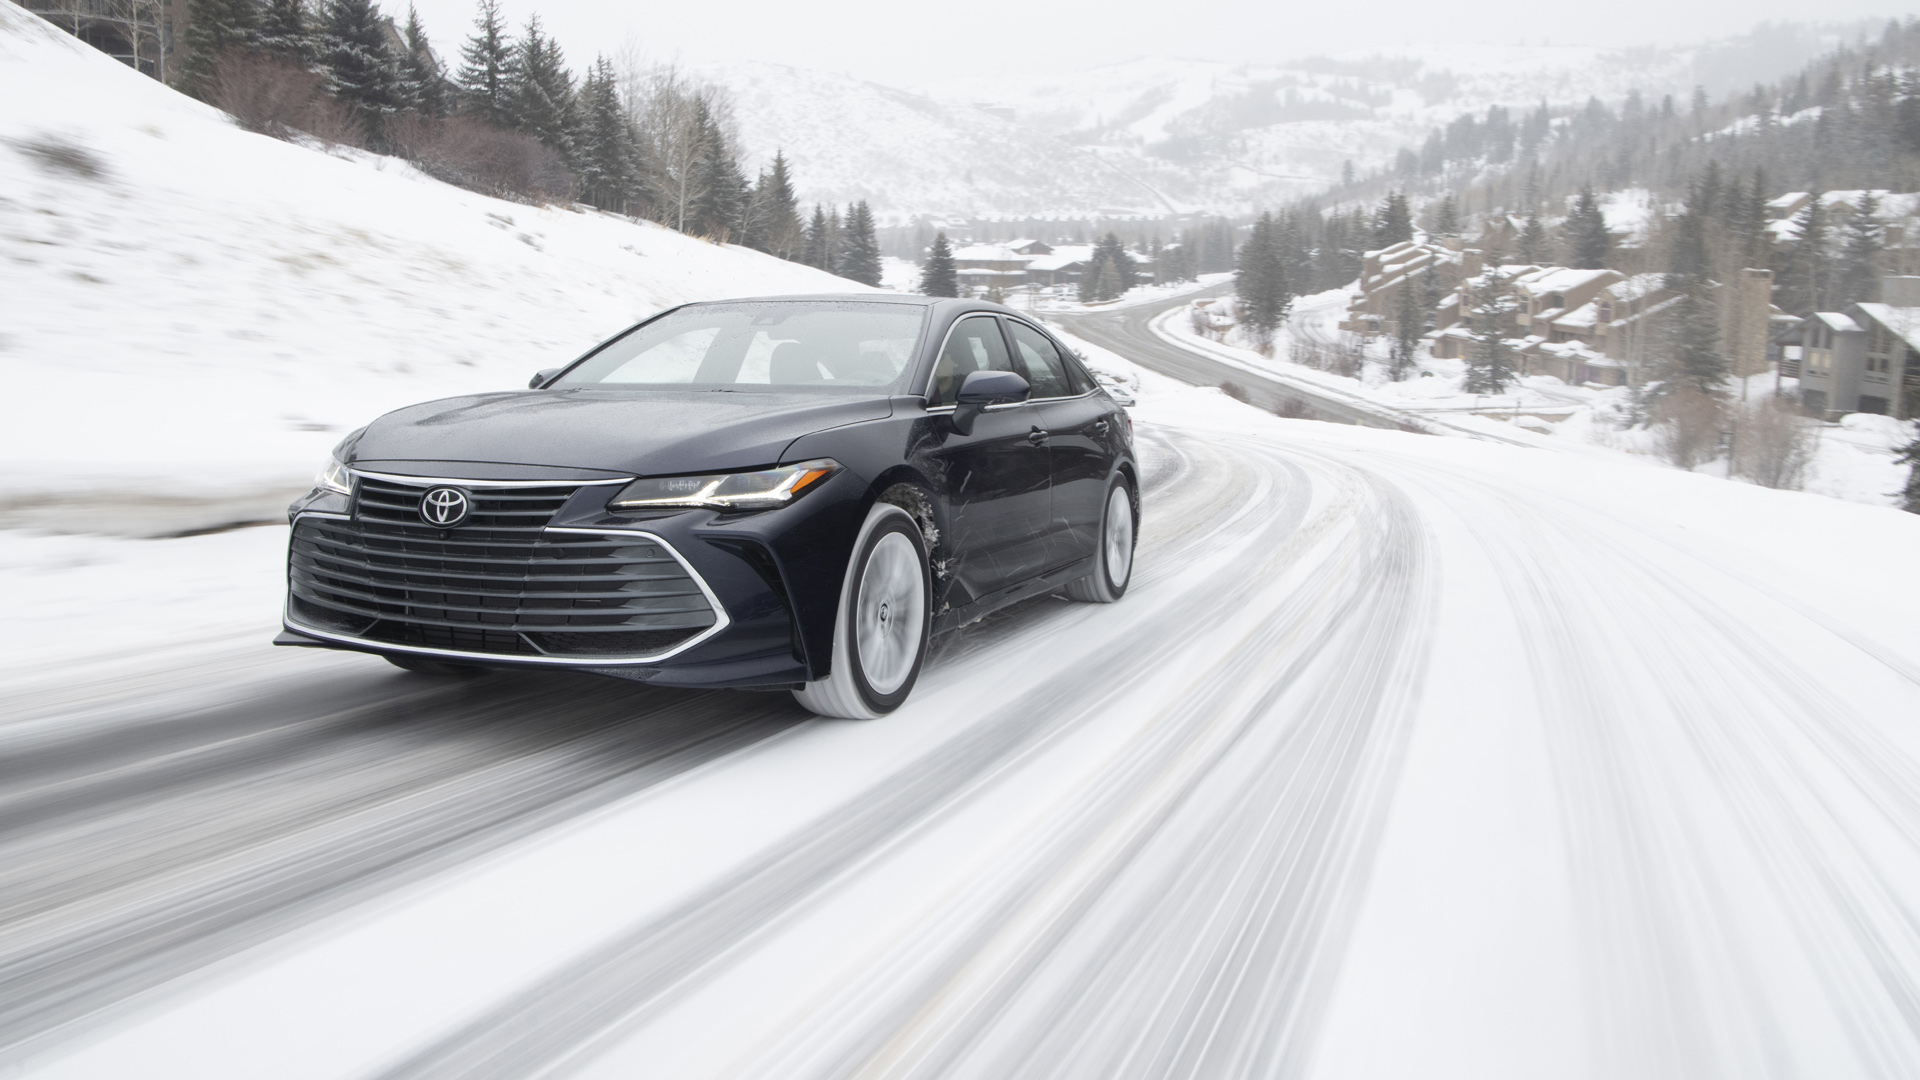 2021 toyota avalon awd review   first drive, what's new